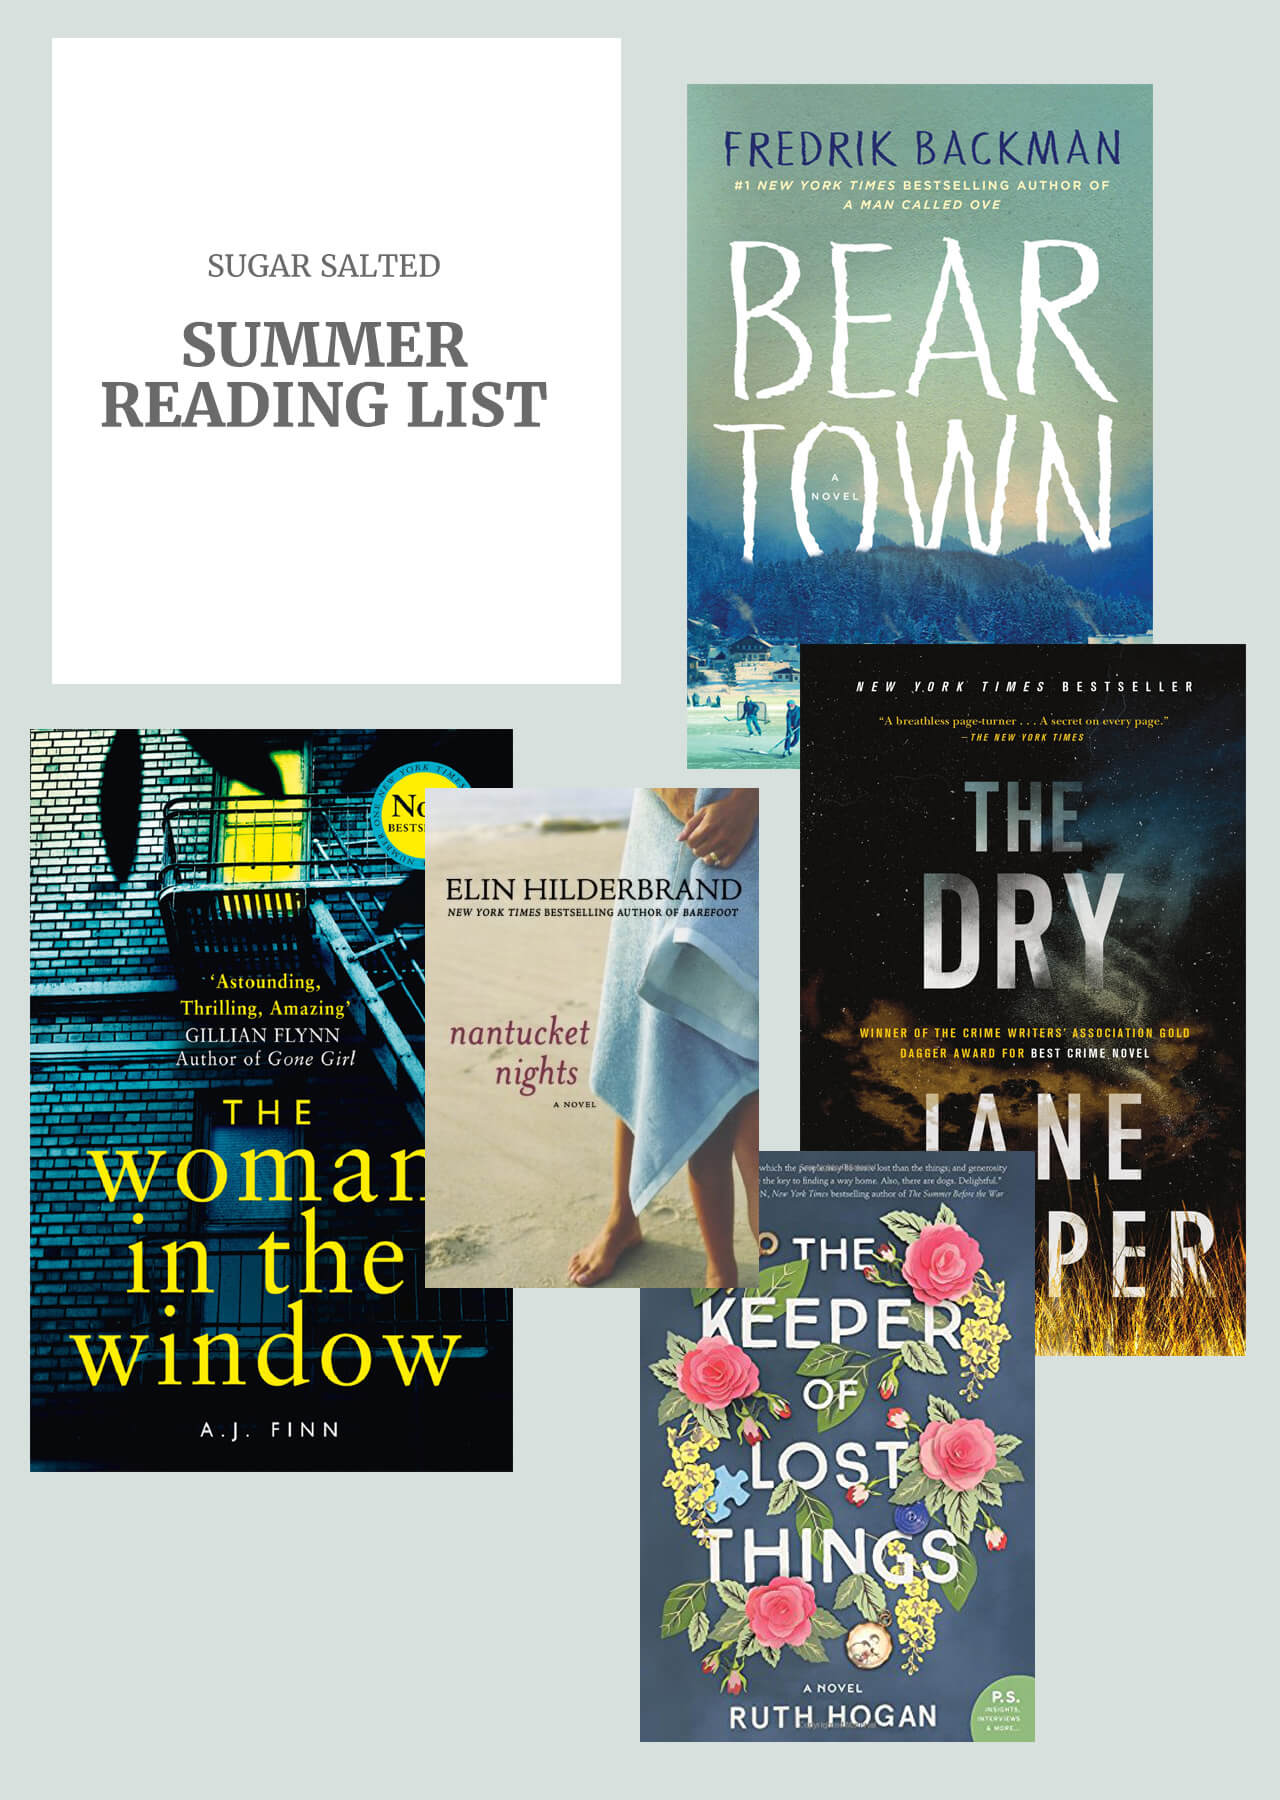 Sugar salted summer reading list for fiction!